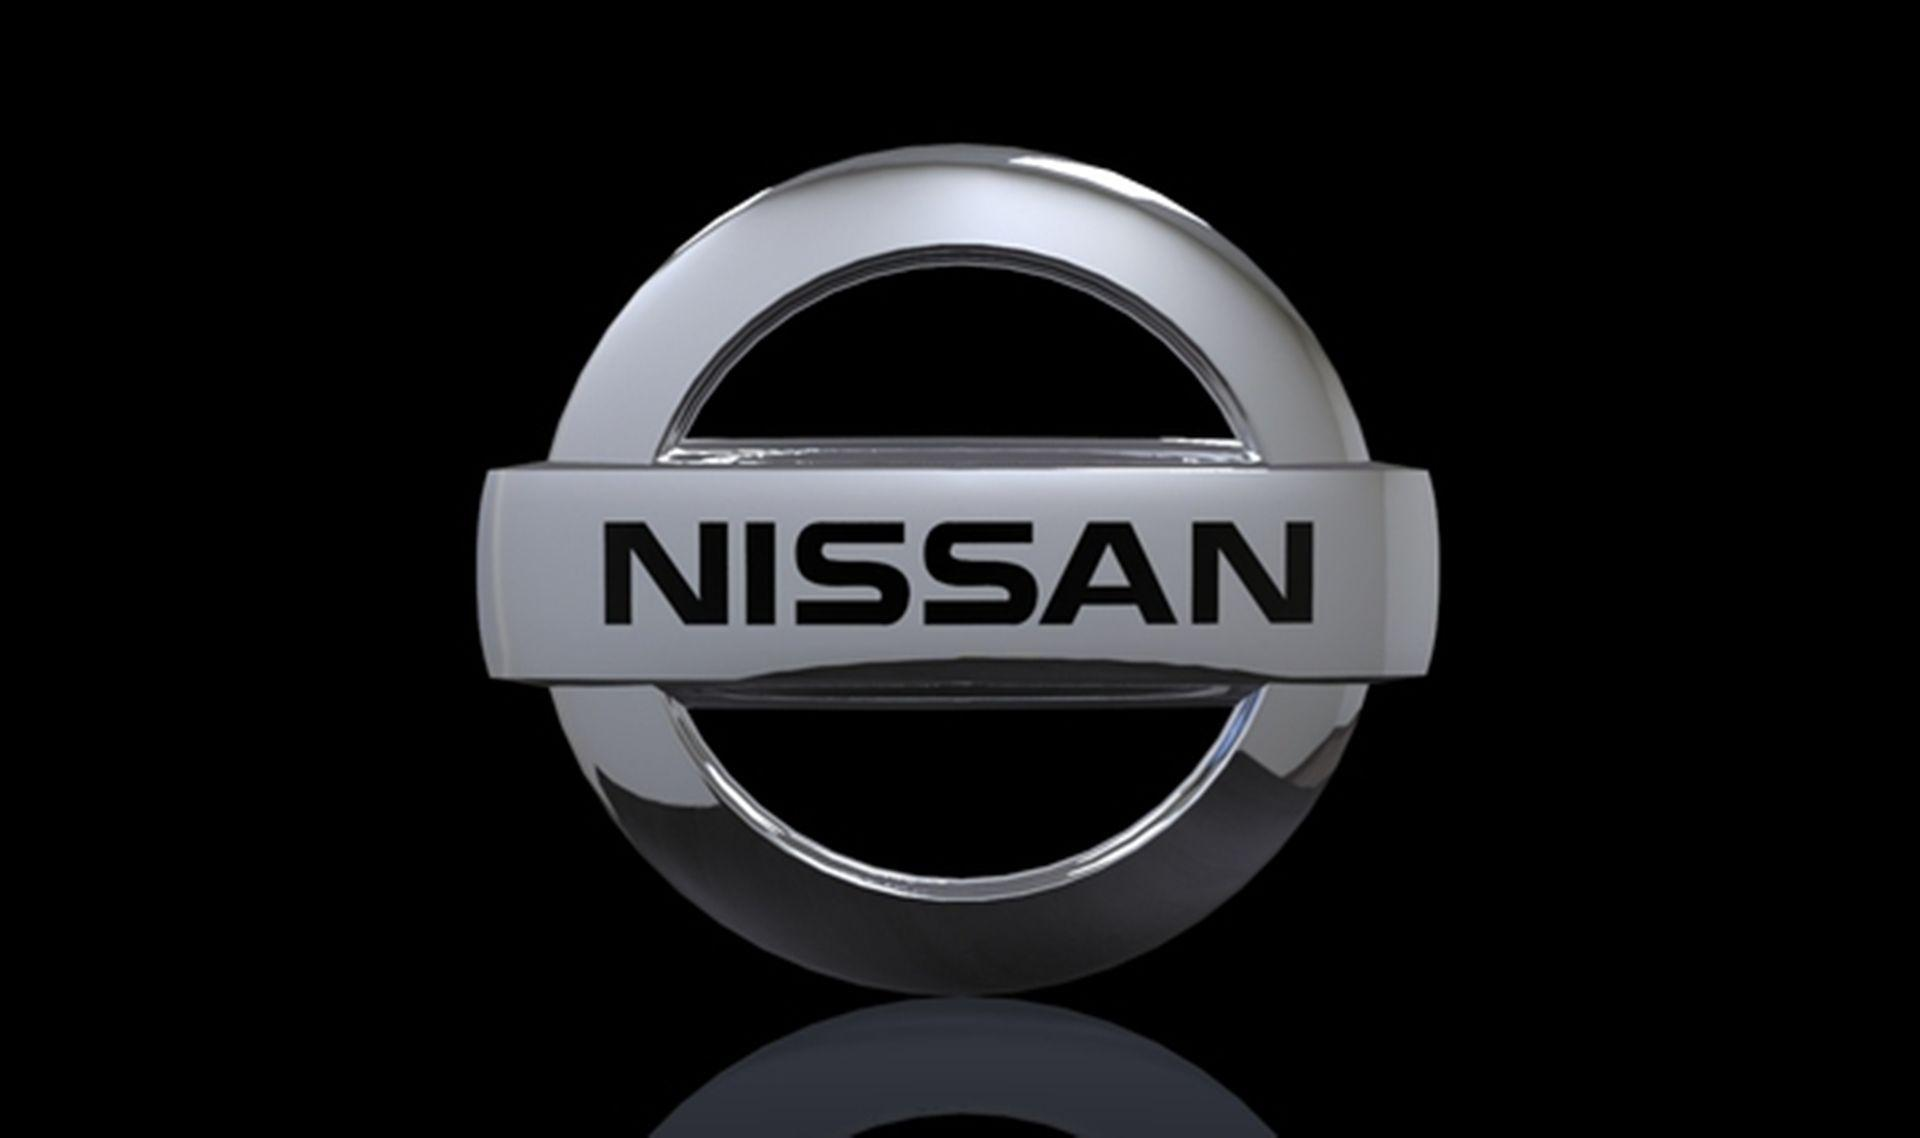 download wallpaper nissan white - photo #34